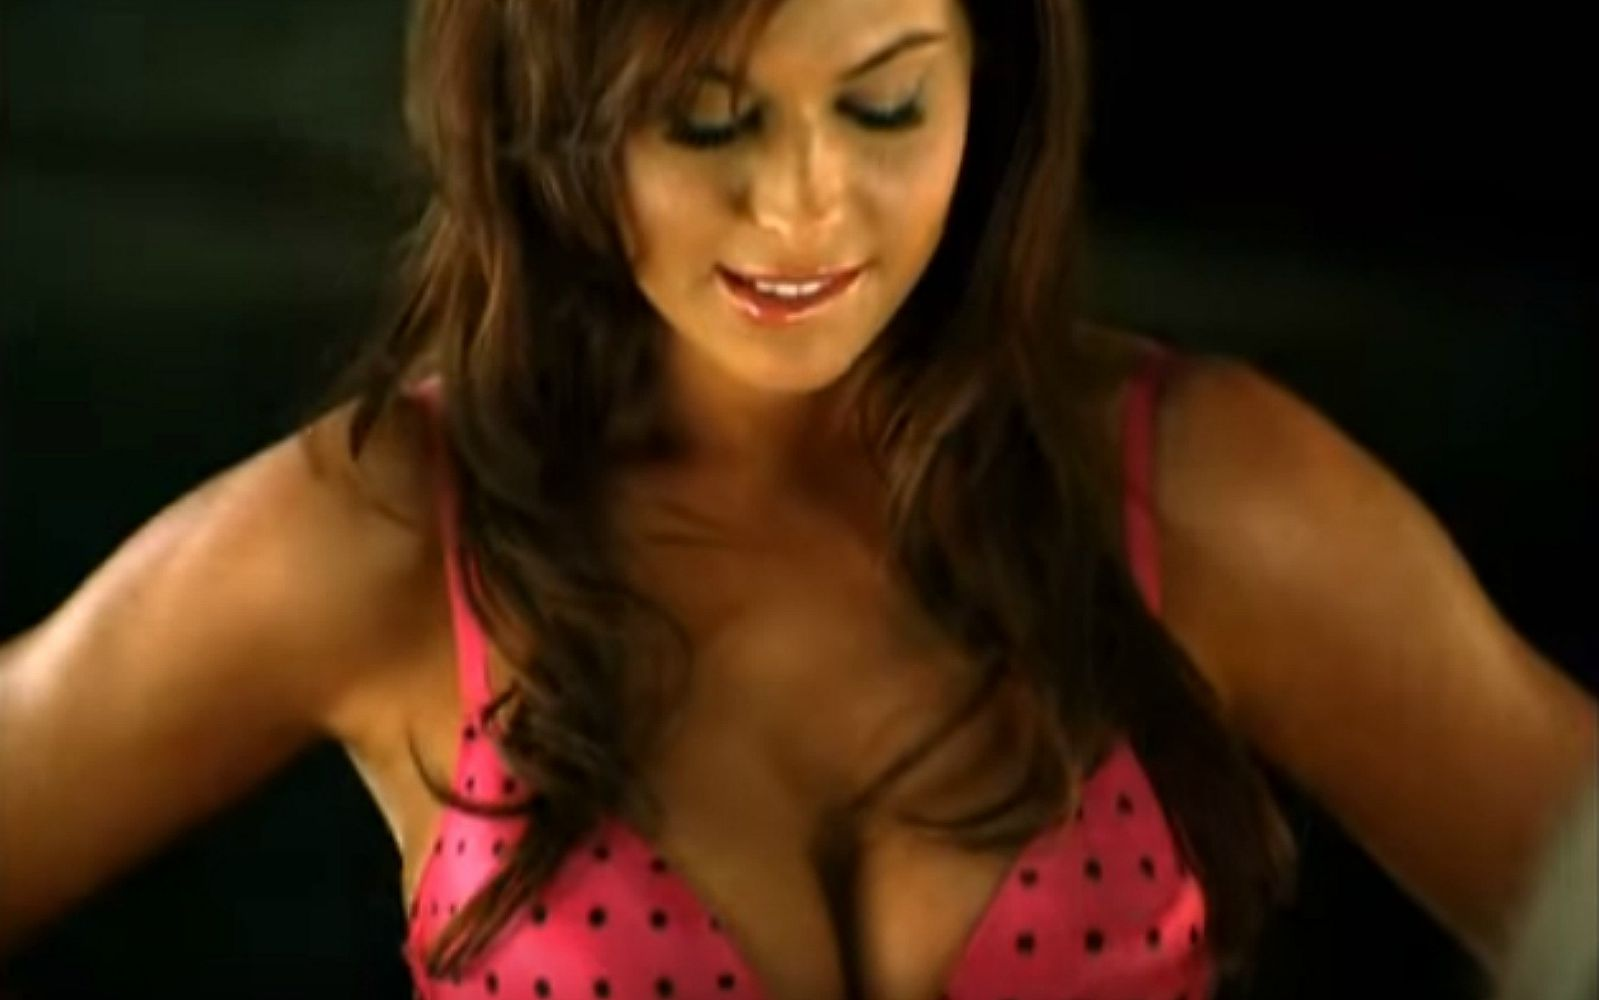 This Banned TV Commercial Was Too Hot for TV. It Has an Hilarious Twist You  Just Can't Miss!